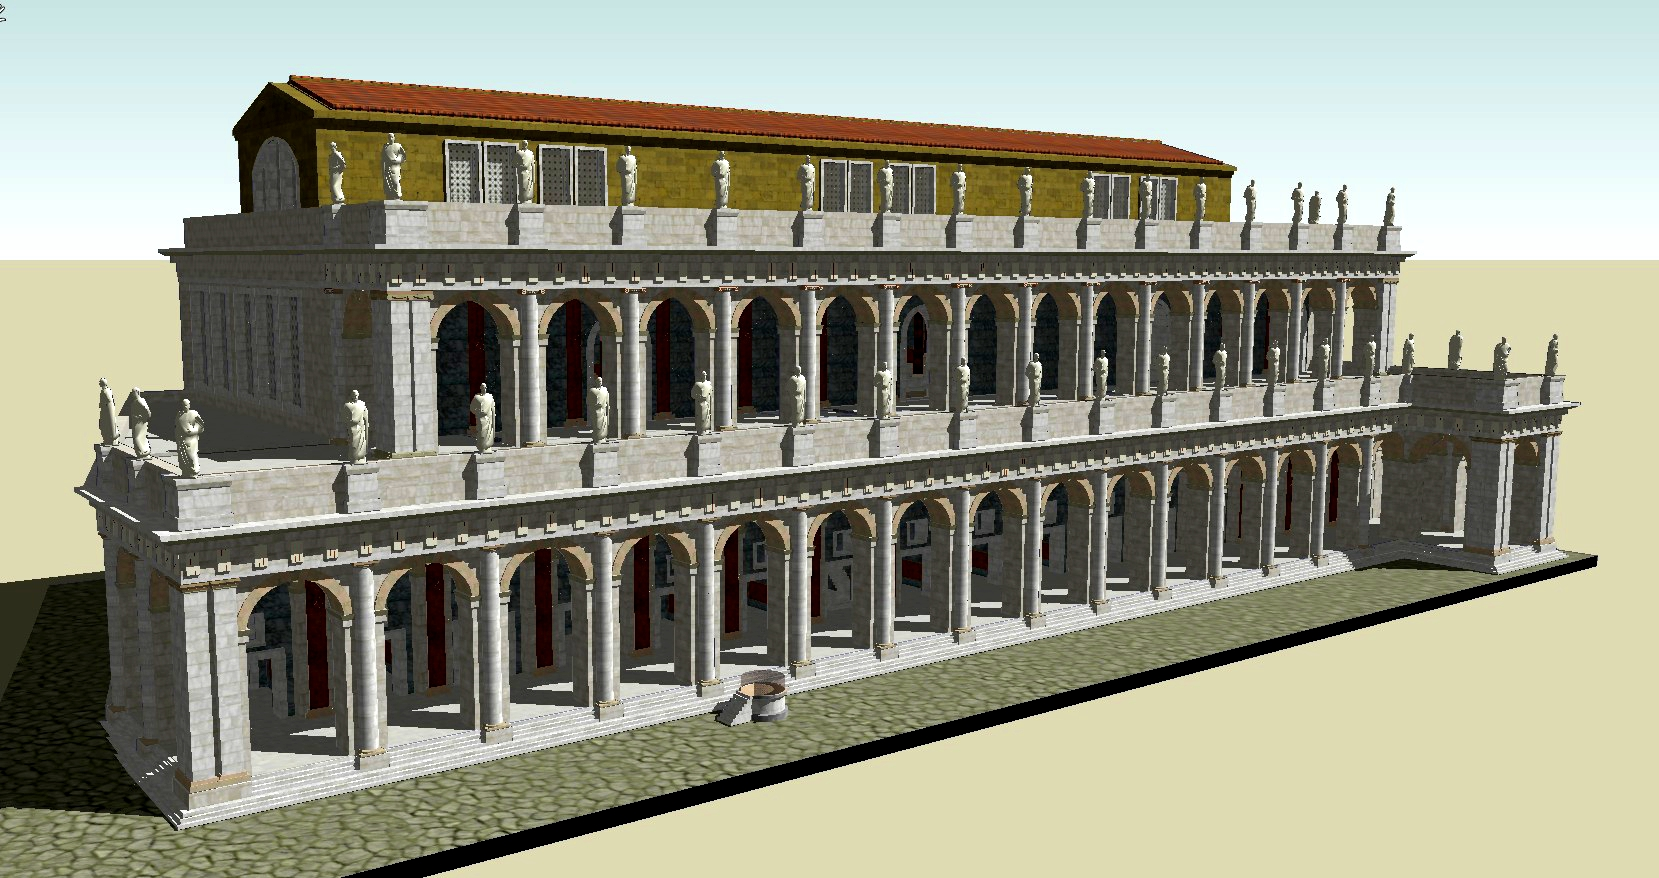 3D Model of the Basilica Aemilia